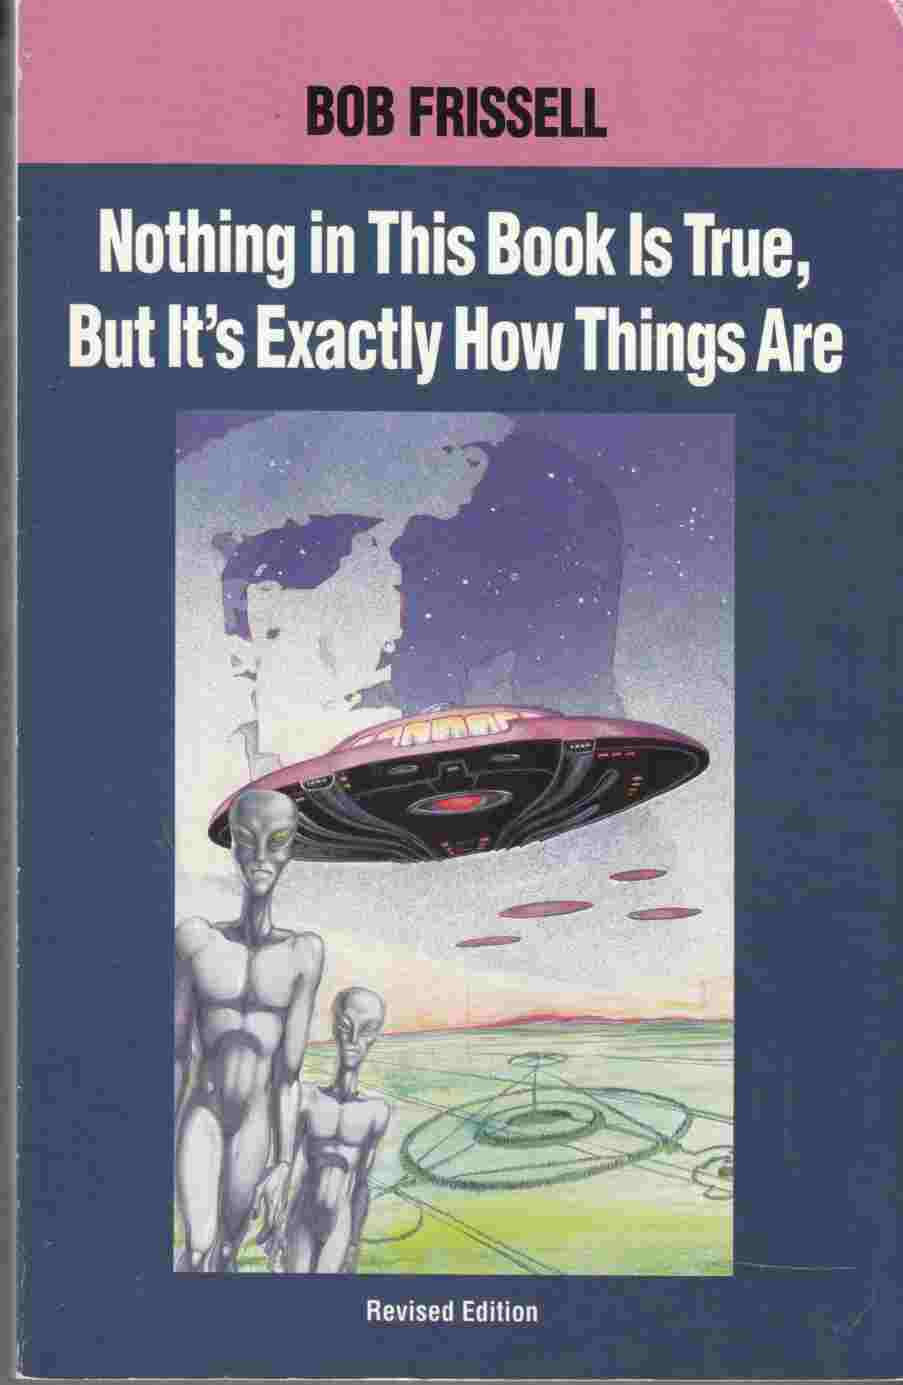 Image for Nothing in This Book is True, but it's Exactly How Things Are The Esoteric Meaning of the Monuments on Mars